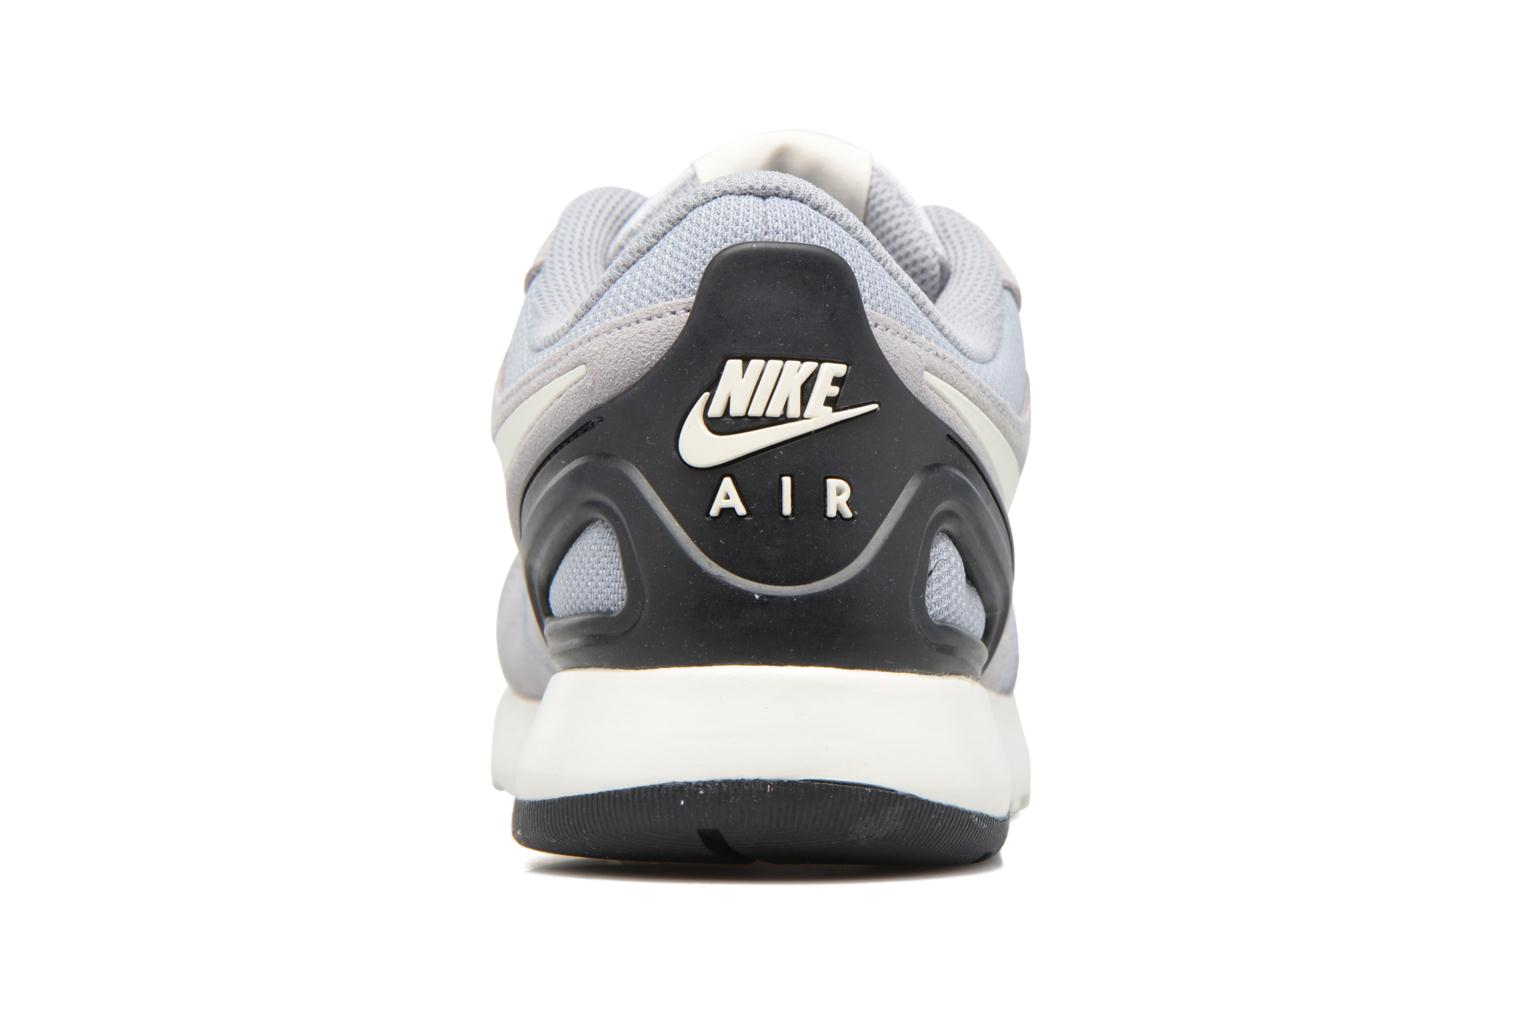 Nike Air Vibenna Wolf Grey Sail Black